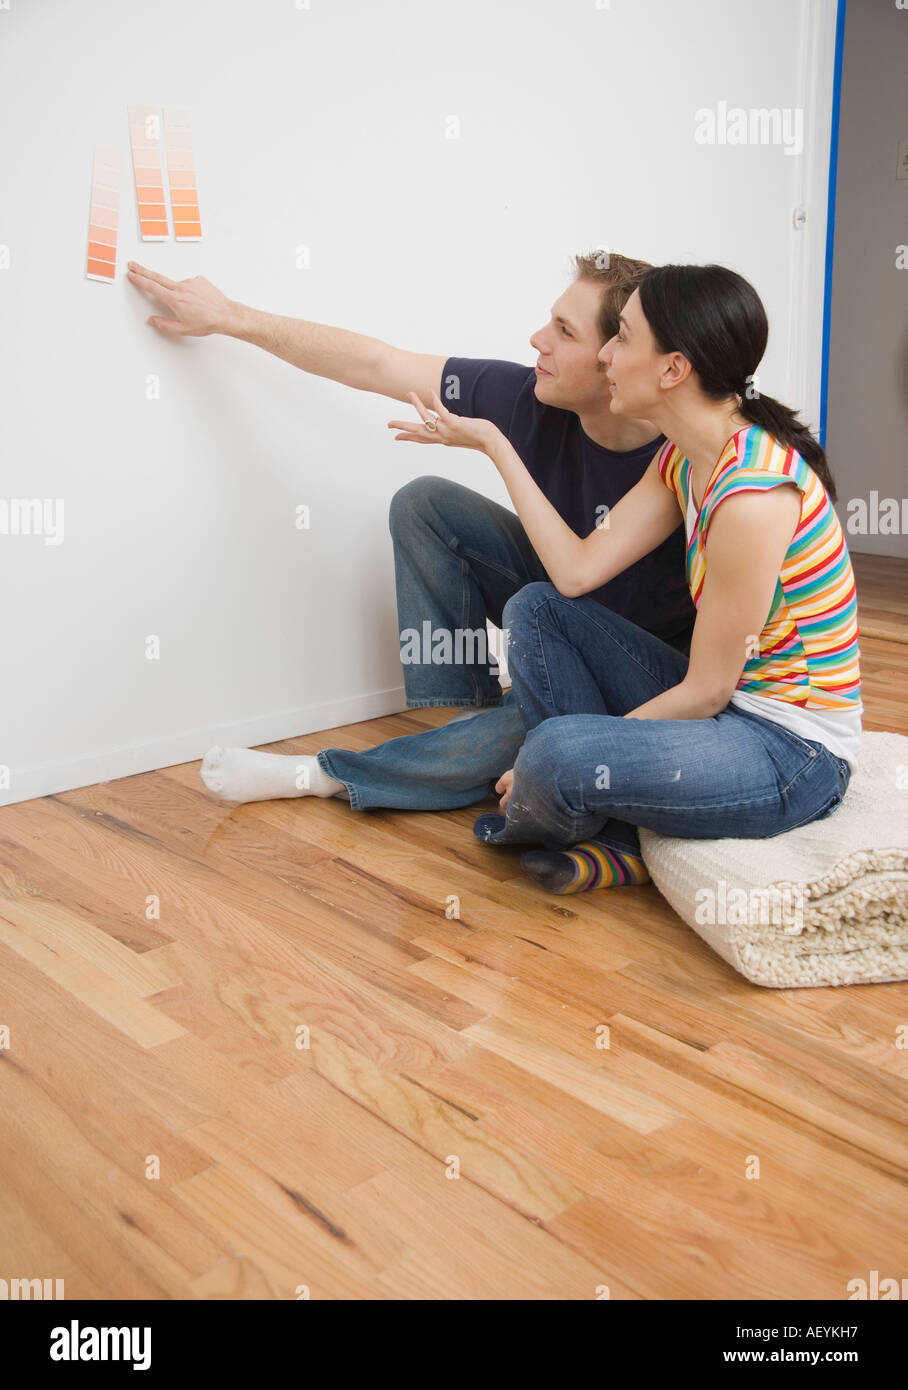 Couple Looking At Paint Swatches On Wall